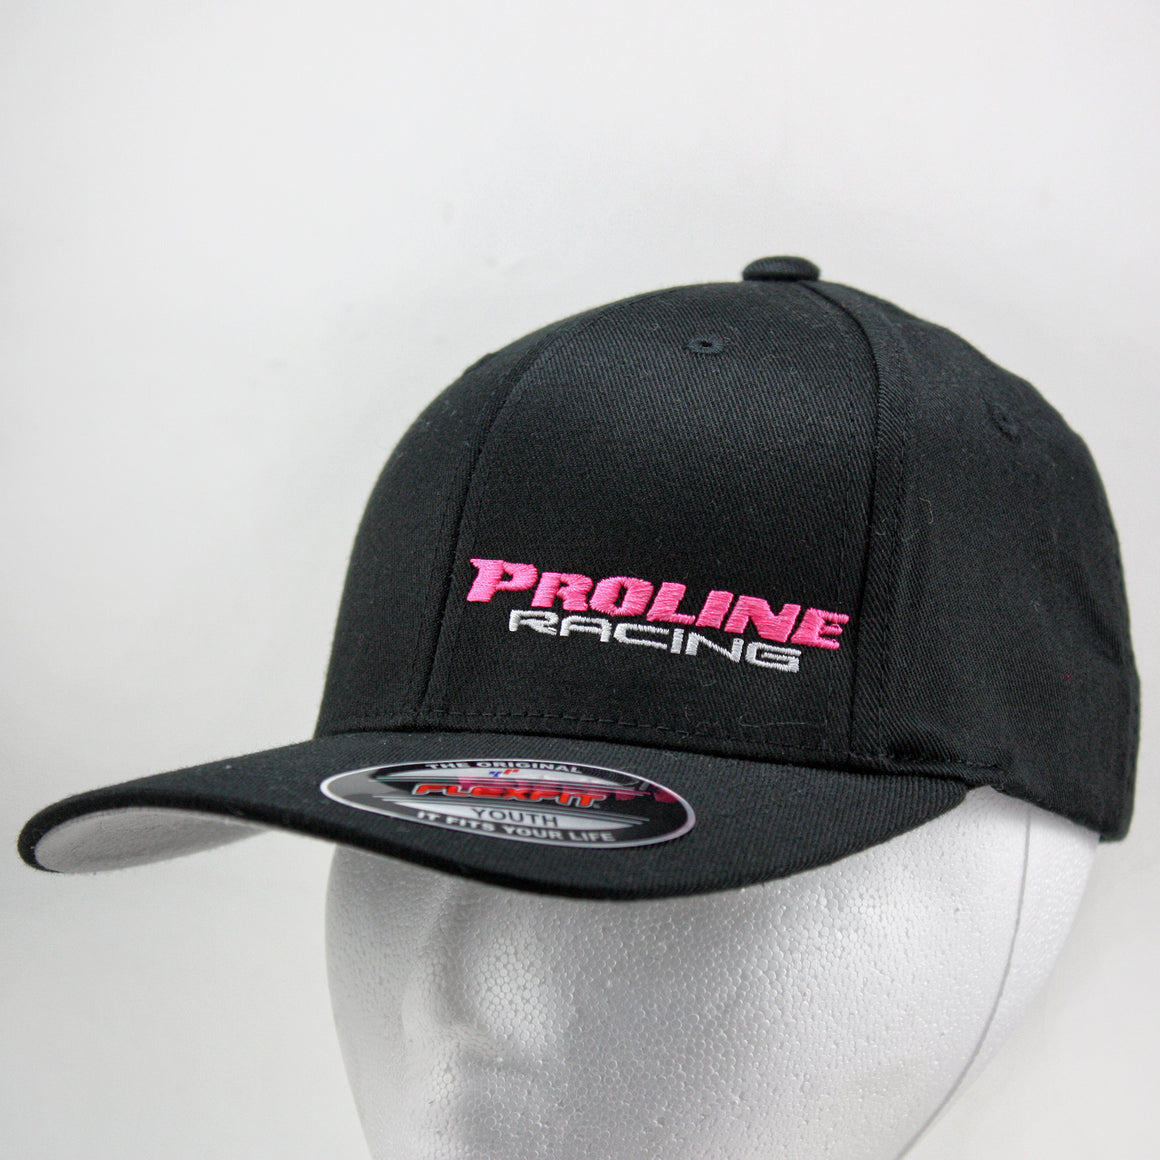 PLR LADIES FLEXFIT HAT - PINK  - Pro Line Racing - 1